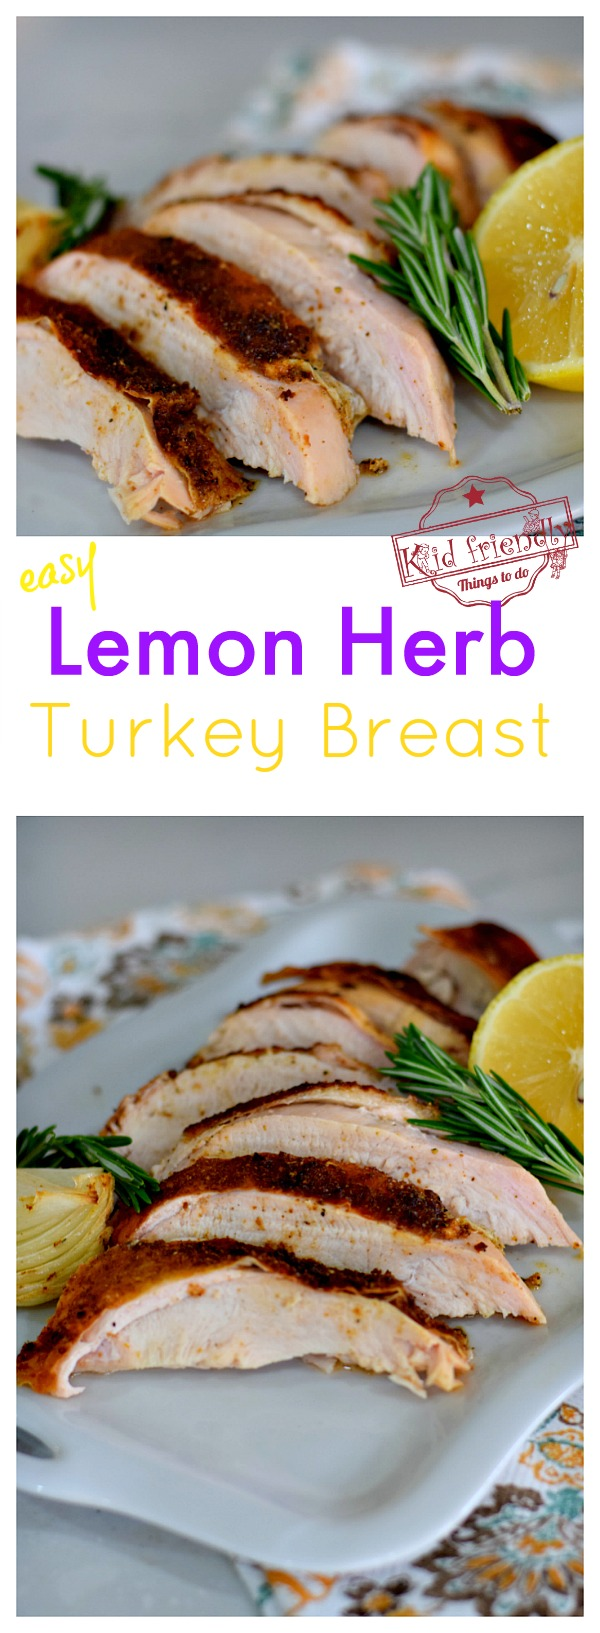 Turkey breast in oven display